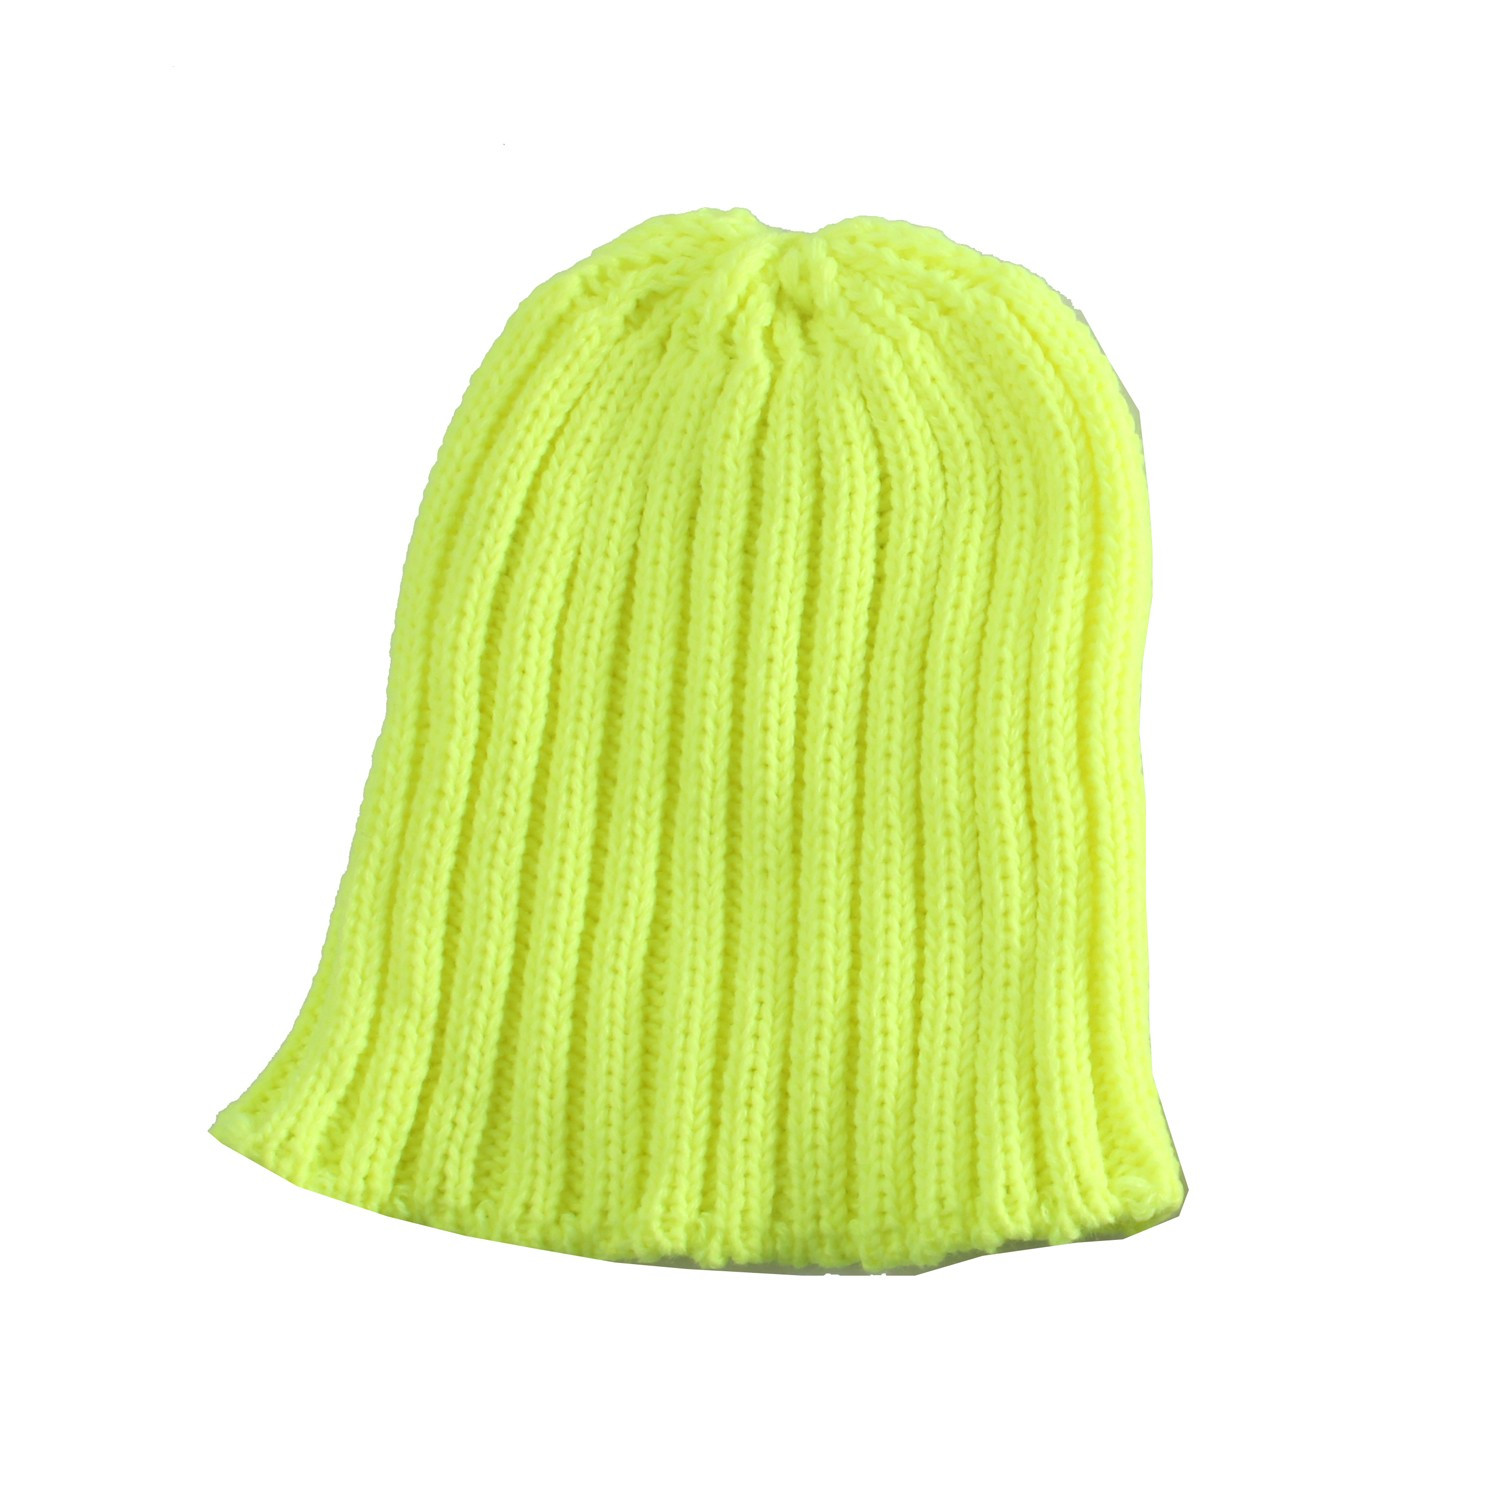 New wholesale Chunky Cable Knit Beanie and More Hats at Cable Knit Hat Of Fresh 40 Pics Cable Knit Hat